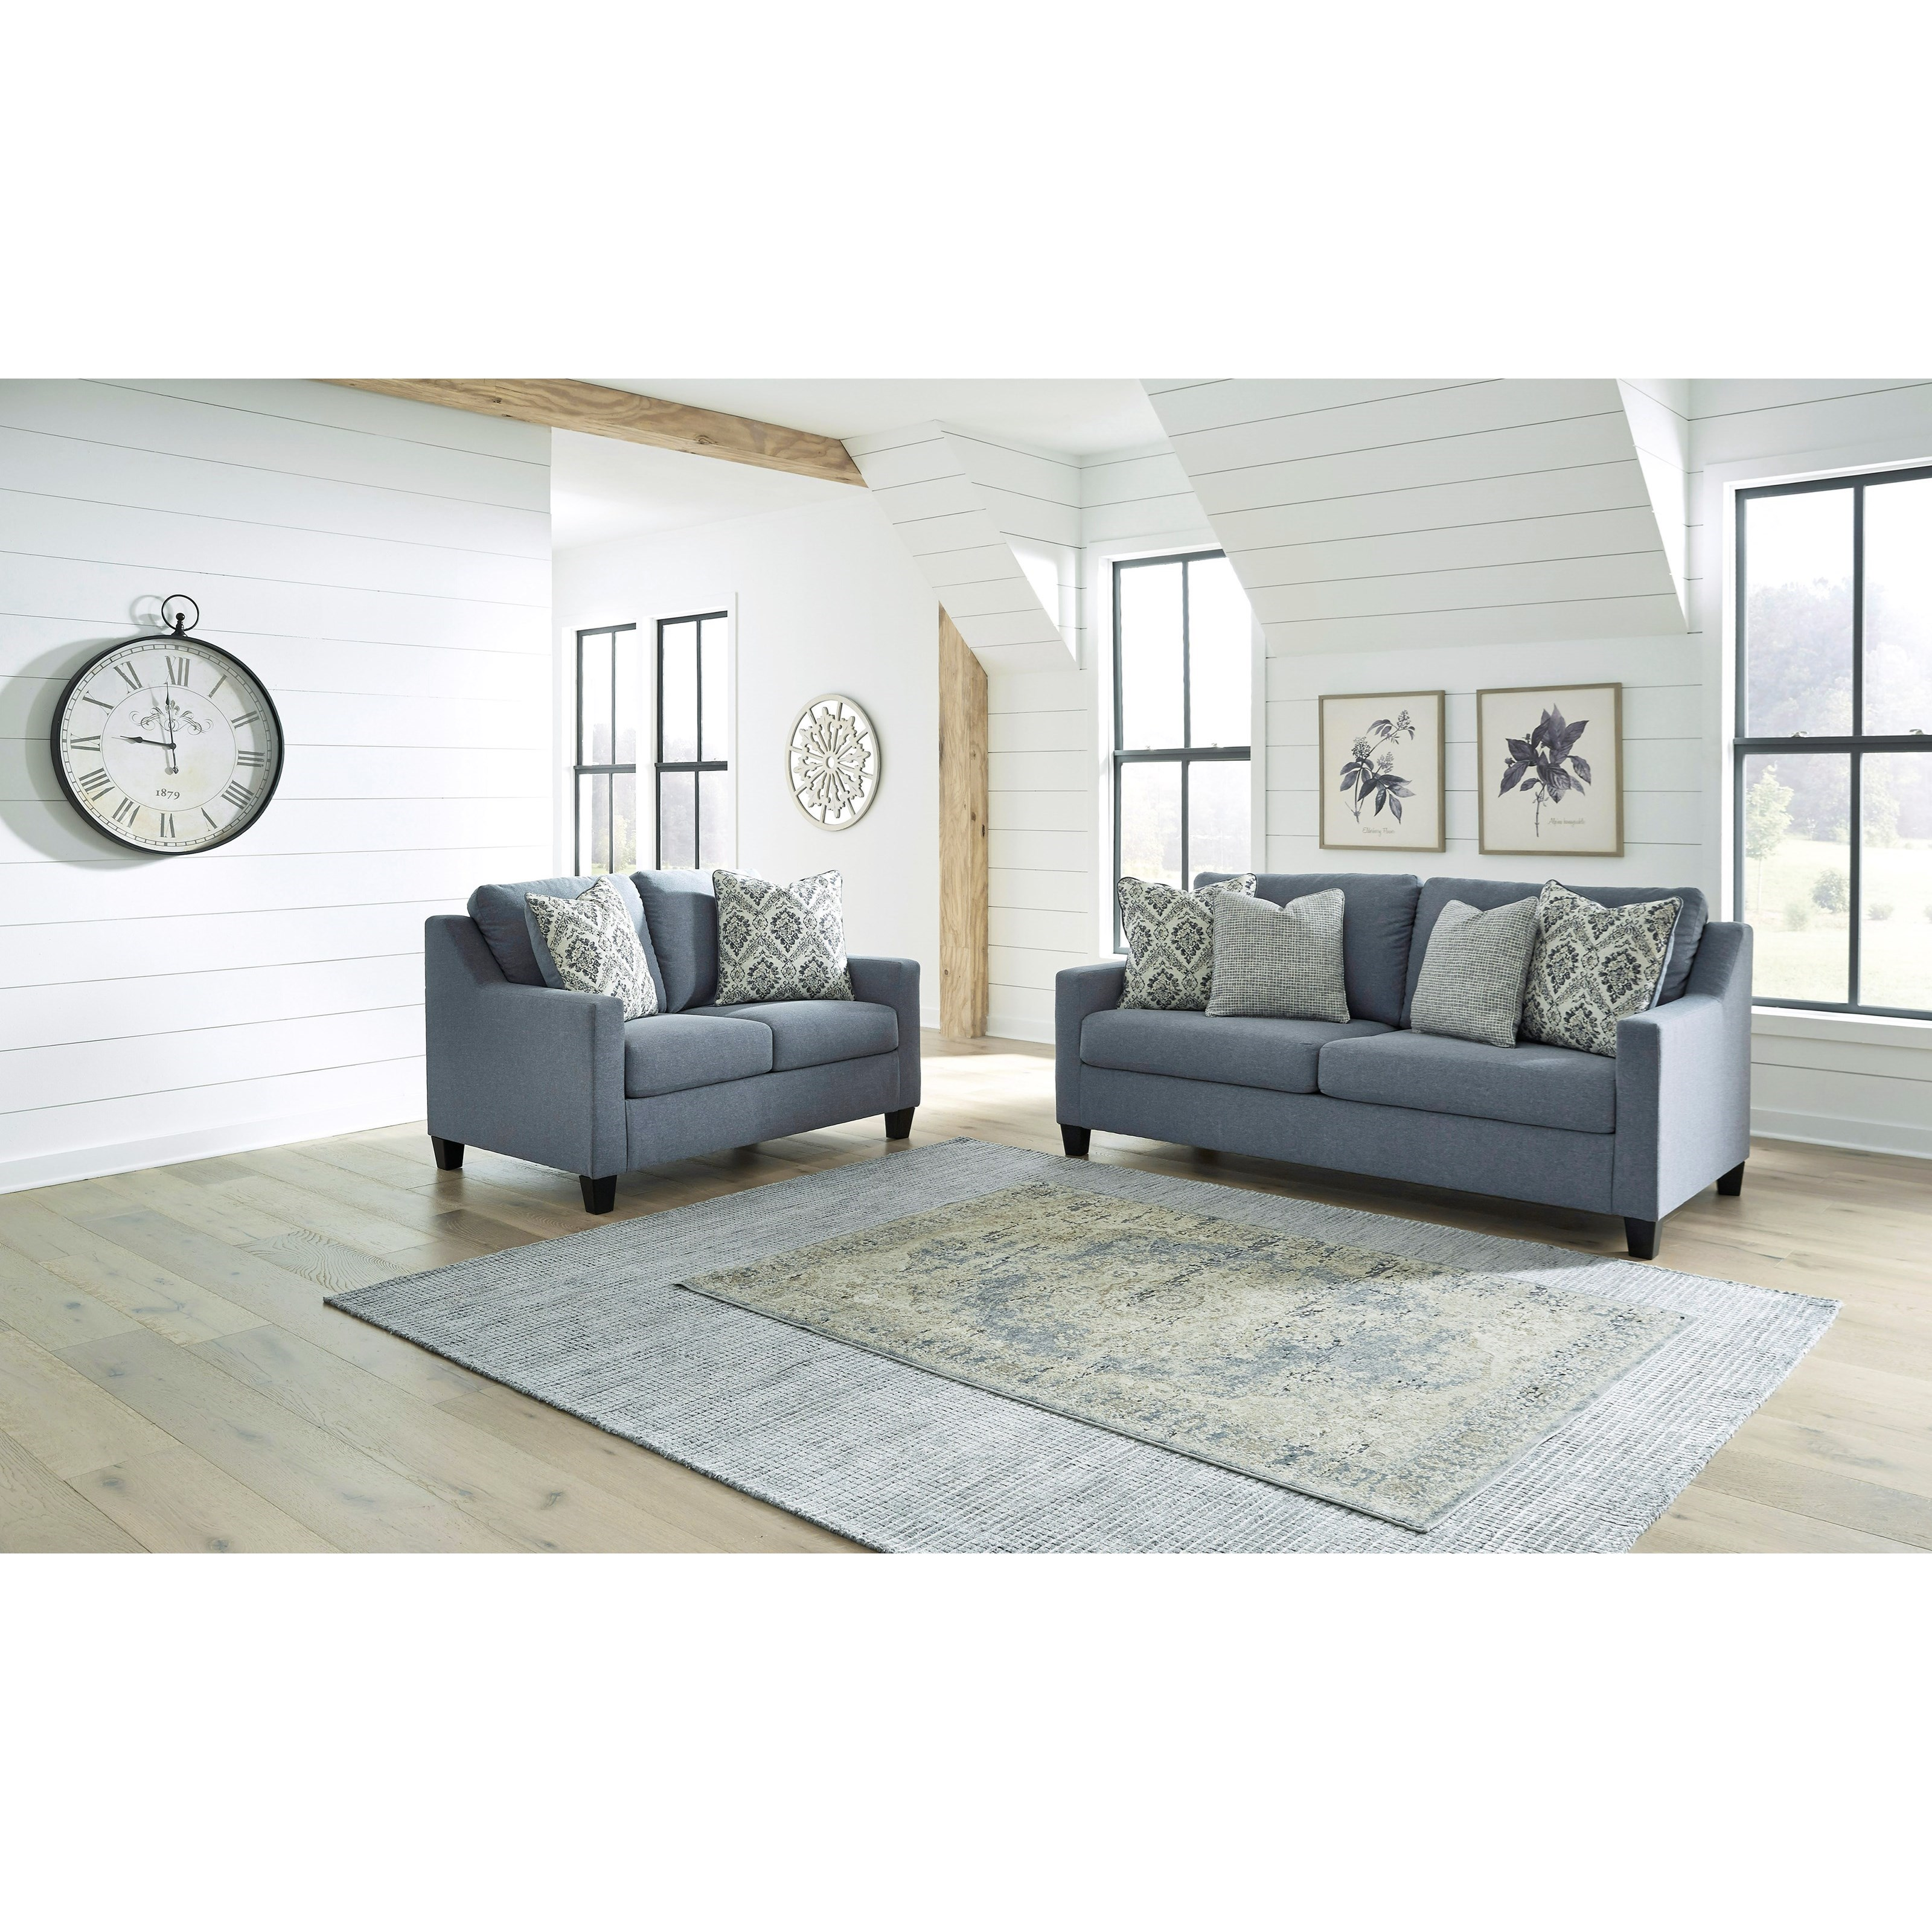 Lemly Living Room Group by Benchcraft at Northeast Factory Direct